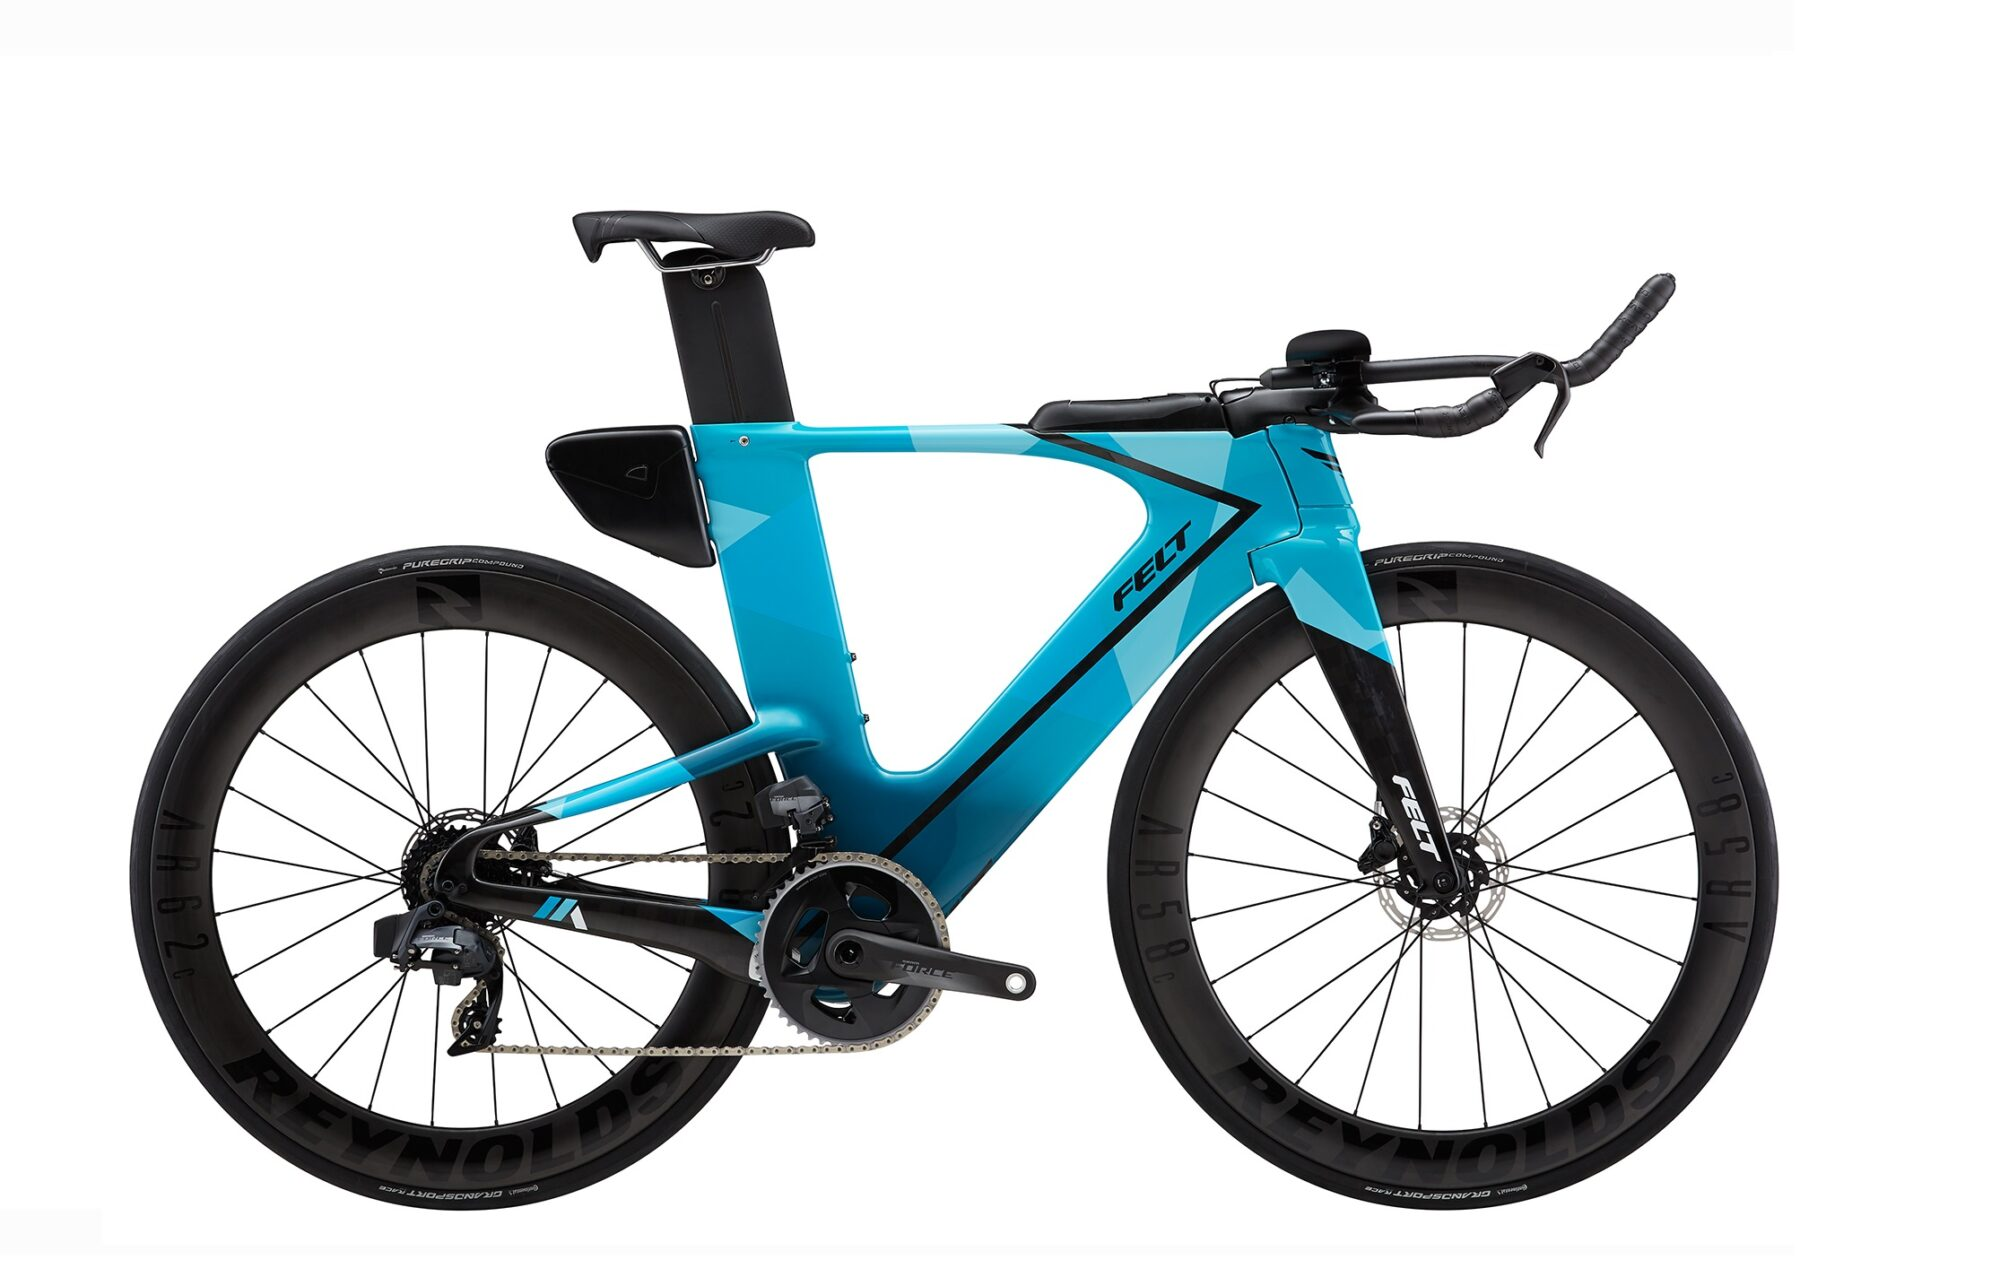 2021 Felt IA Triathlon Bike